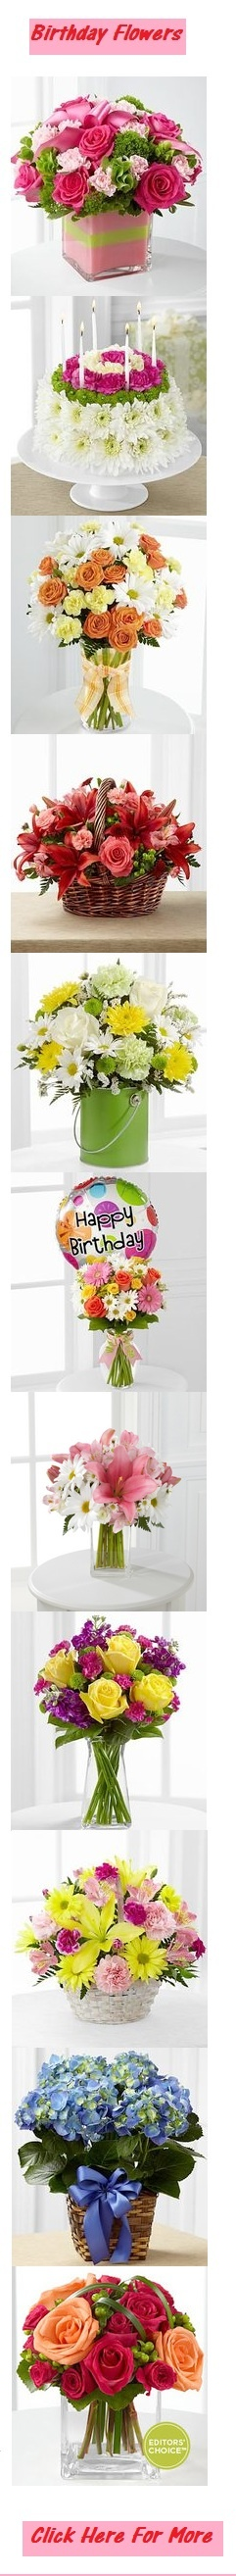 Beautiful #Birthday #Flower #Bouquet visit http://www.squidoo.com/cheap-flowers-delivered-cheap-valentines-flowers-cheap-flowers-delivery